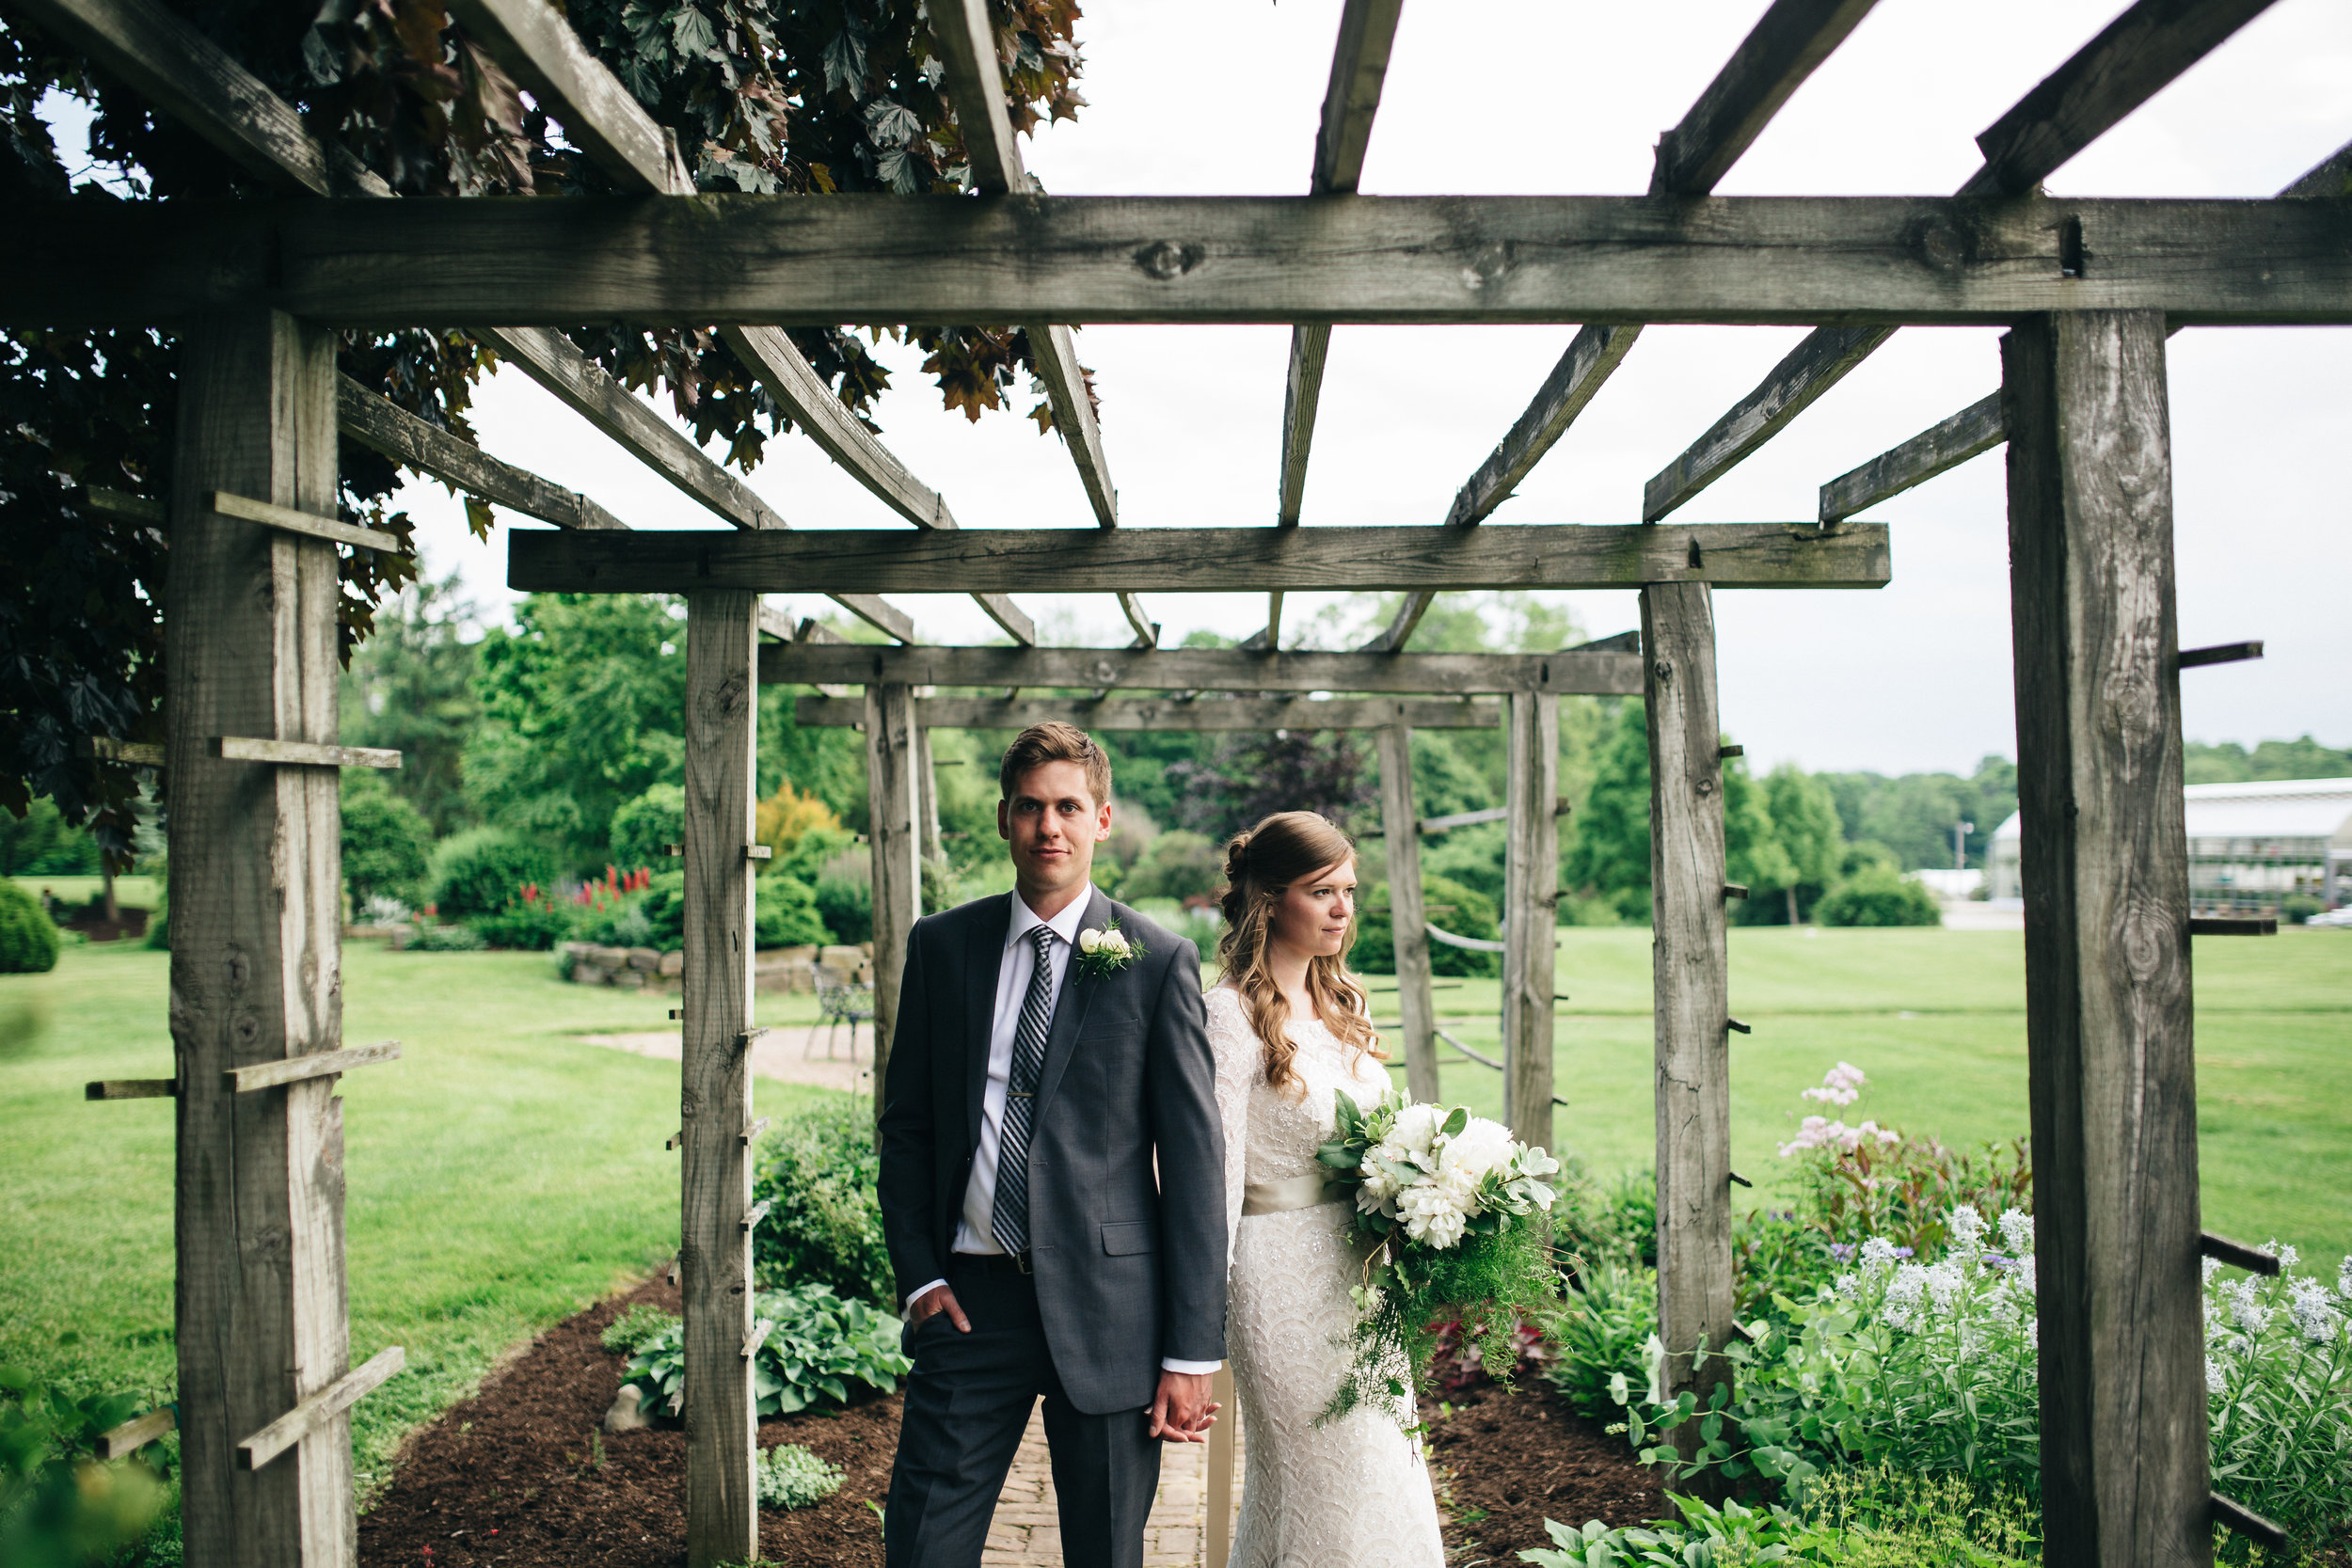 Bride and groom portrait at Quailcrest Farm in Wooster, Ohio.